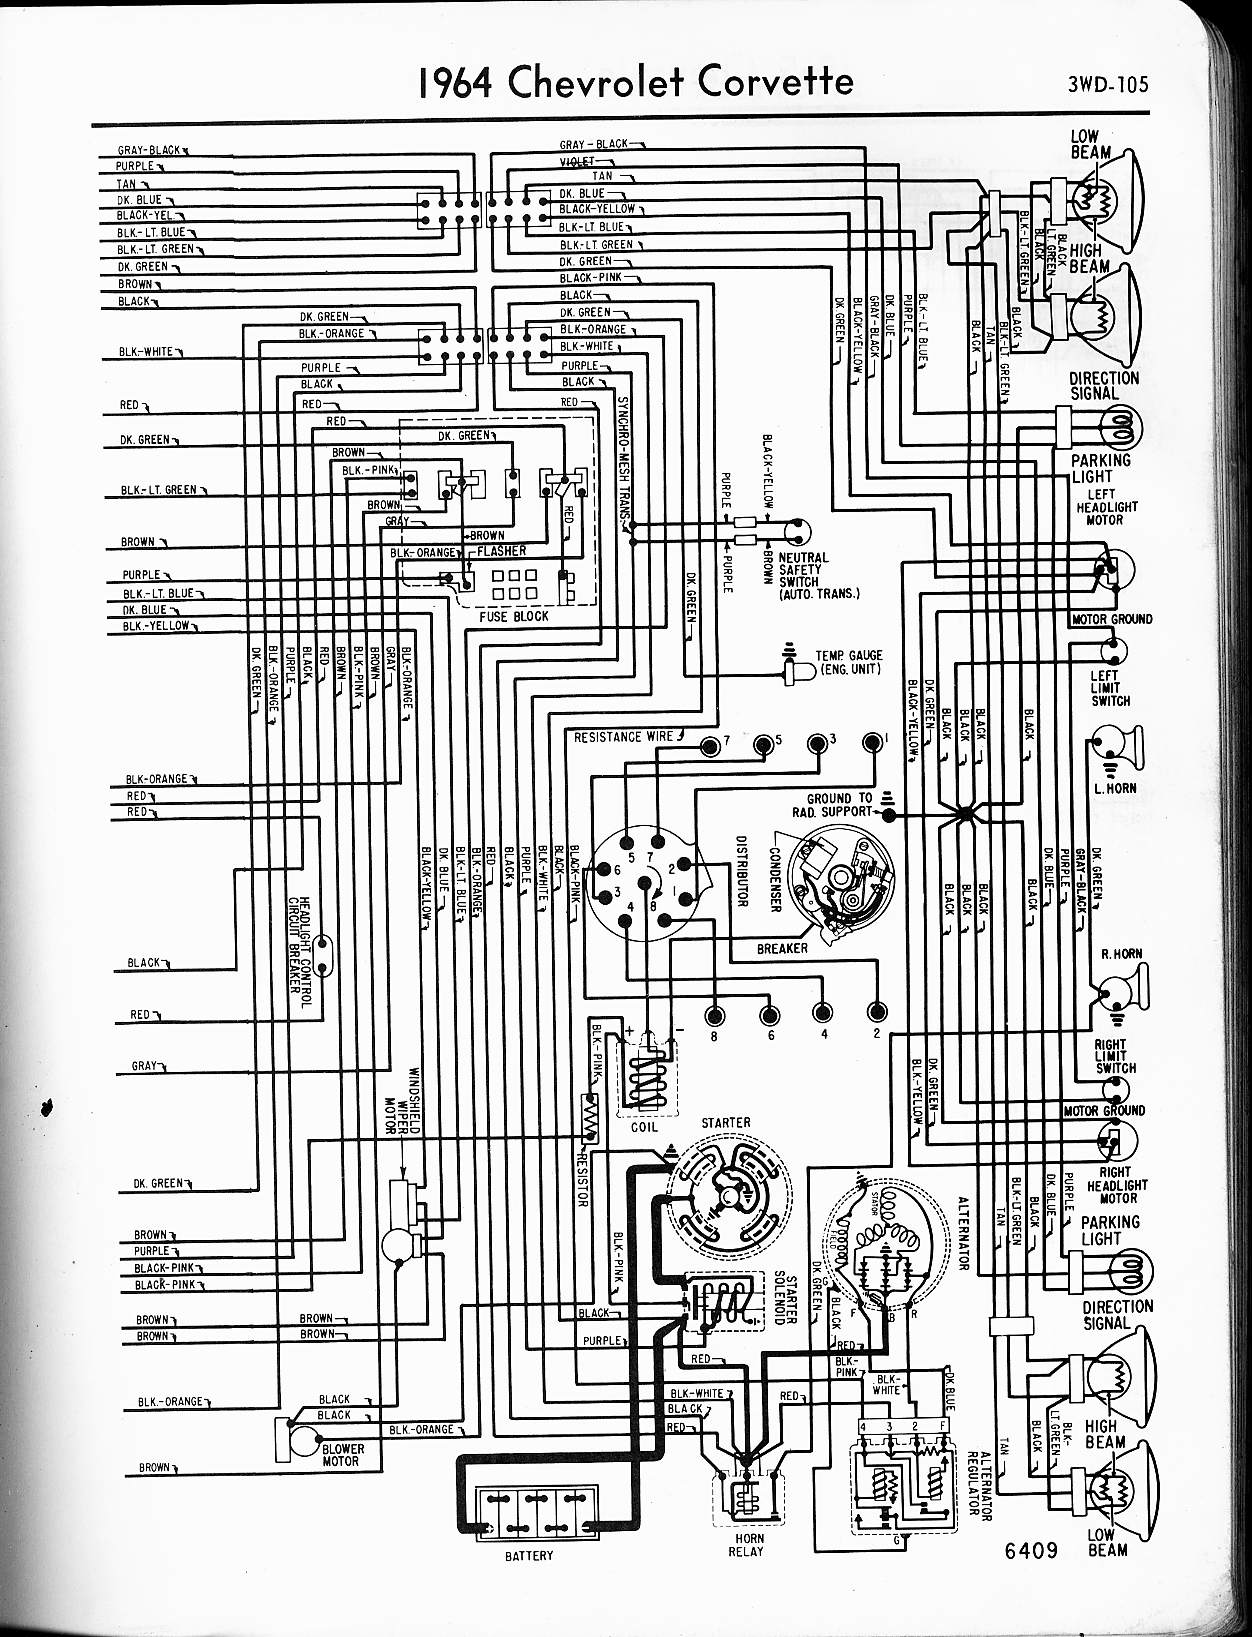 MWireChev64_3WD 105 corvette wiring diagrams free 1980 corvette wiring diagram 65 Chevy Truck Wiring Diagram at soozxer.org